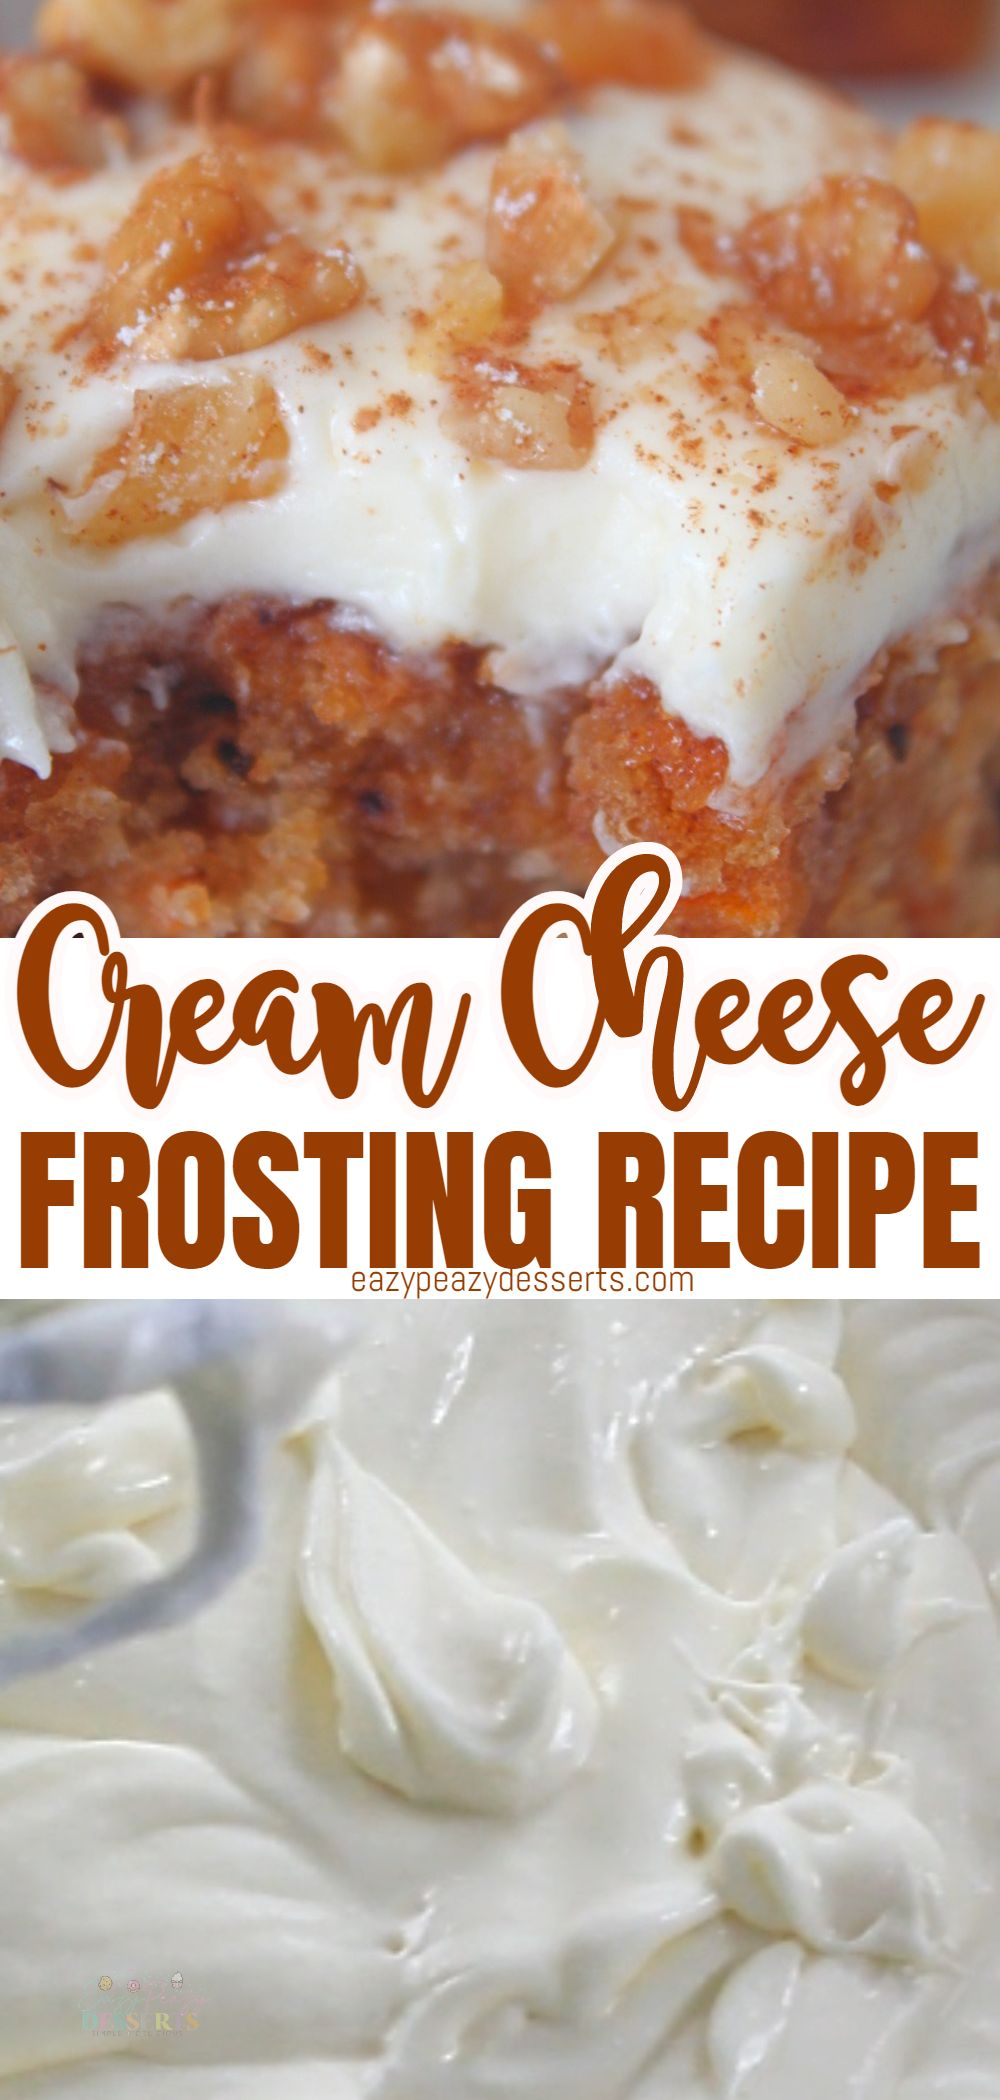 Frosted cakes are a thing, and any cake will become a lot more special with a delicious icing. Don't be intimidated by making it yourself, homemade cream cheese frosting is quite easy! Today I'm going to show you the super-easy way of making a delicious simple cream cheese frosting for all your cakes, cookies and cupcakes. via @eazypeazydesserts